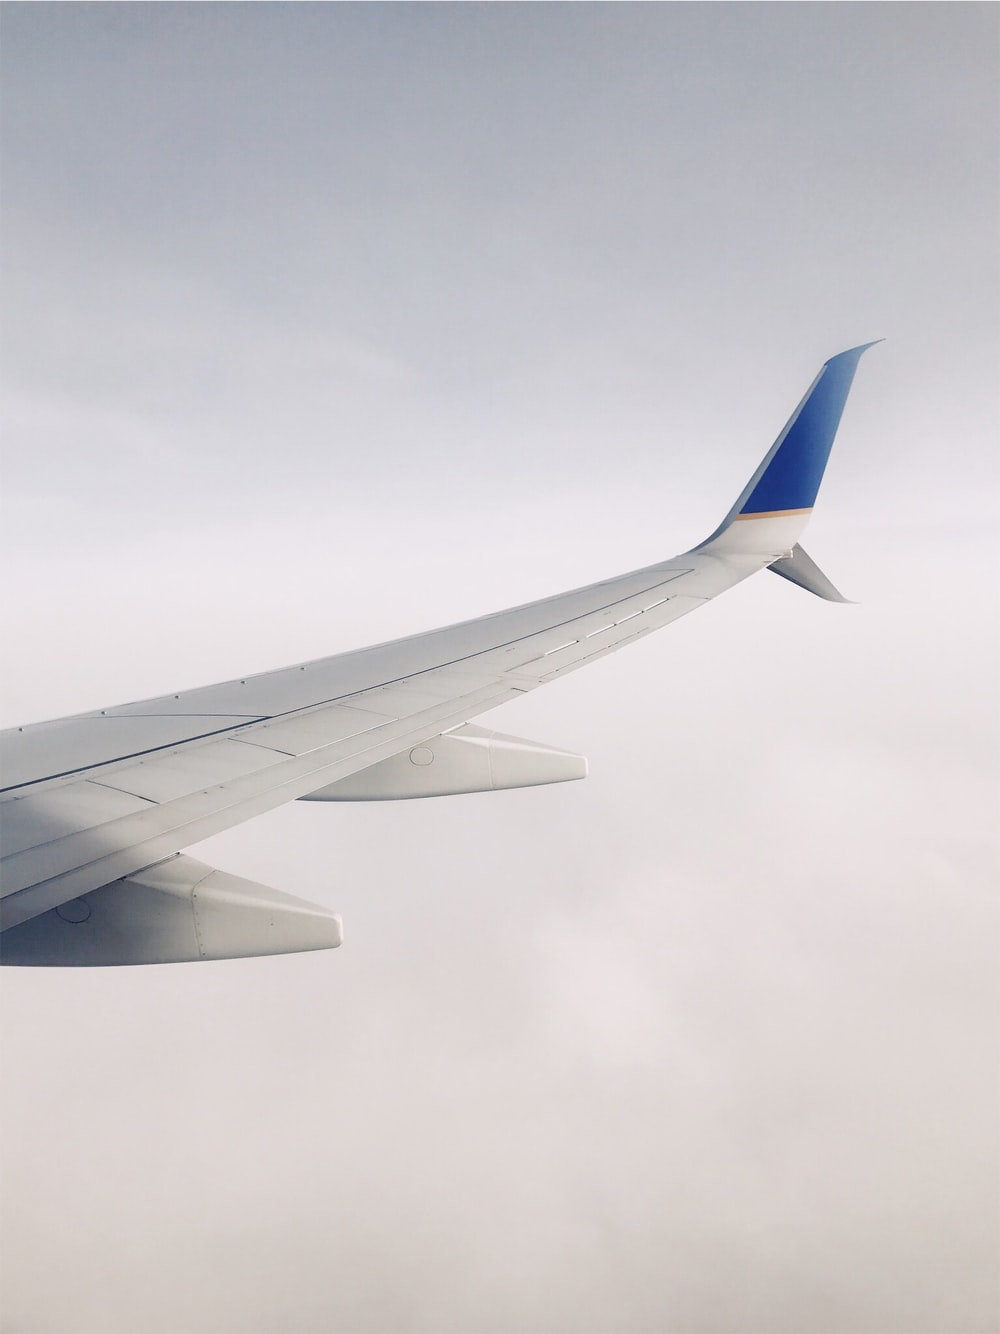 white and blue airplane flying over clouds during daytime